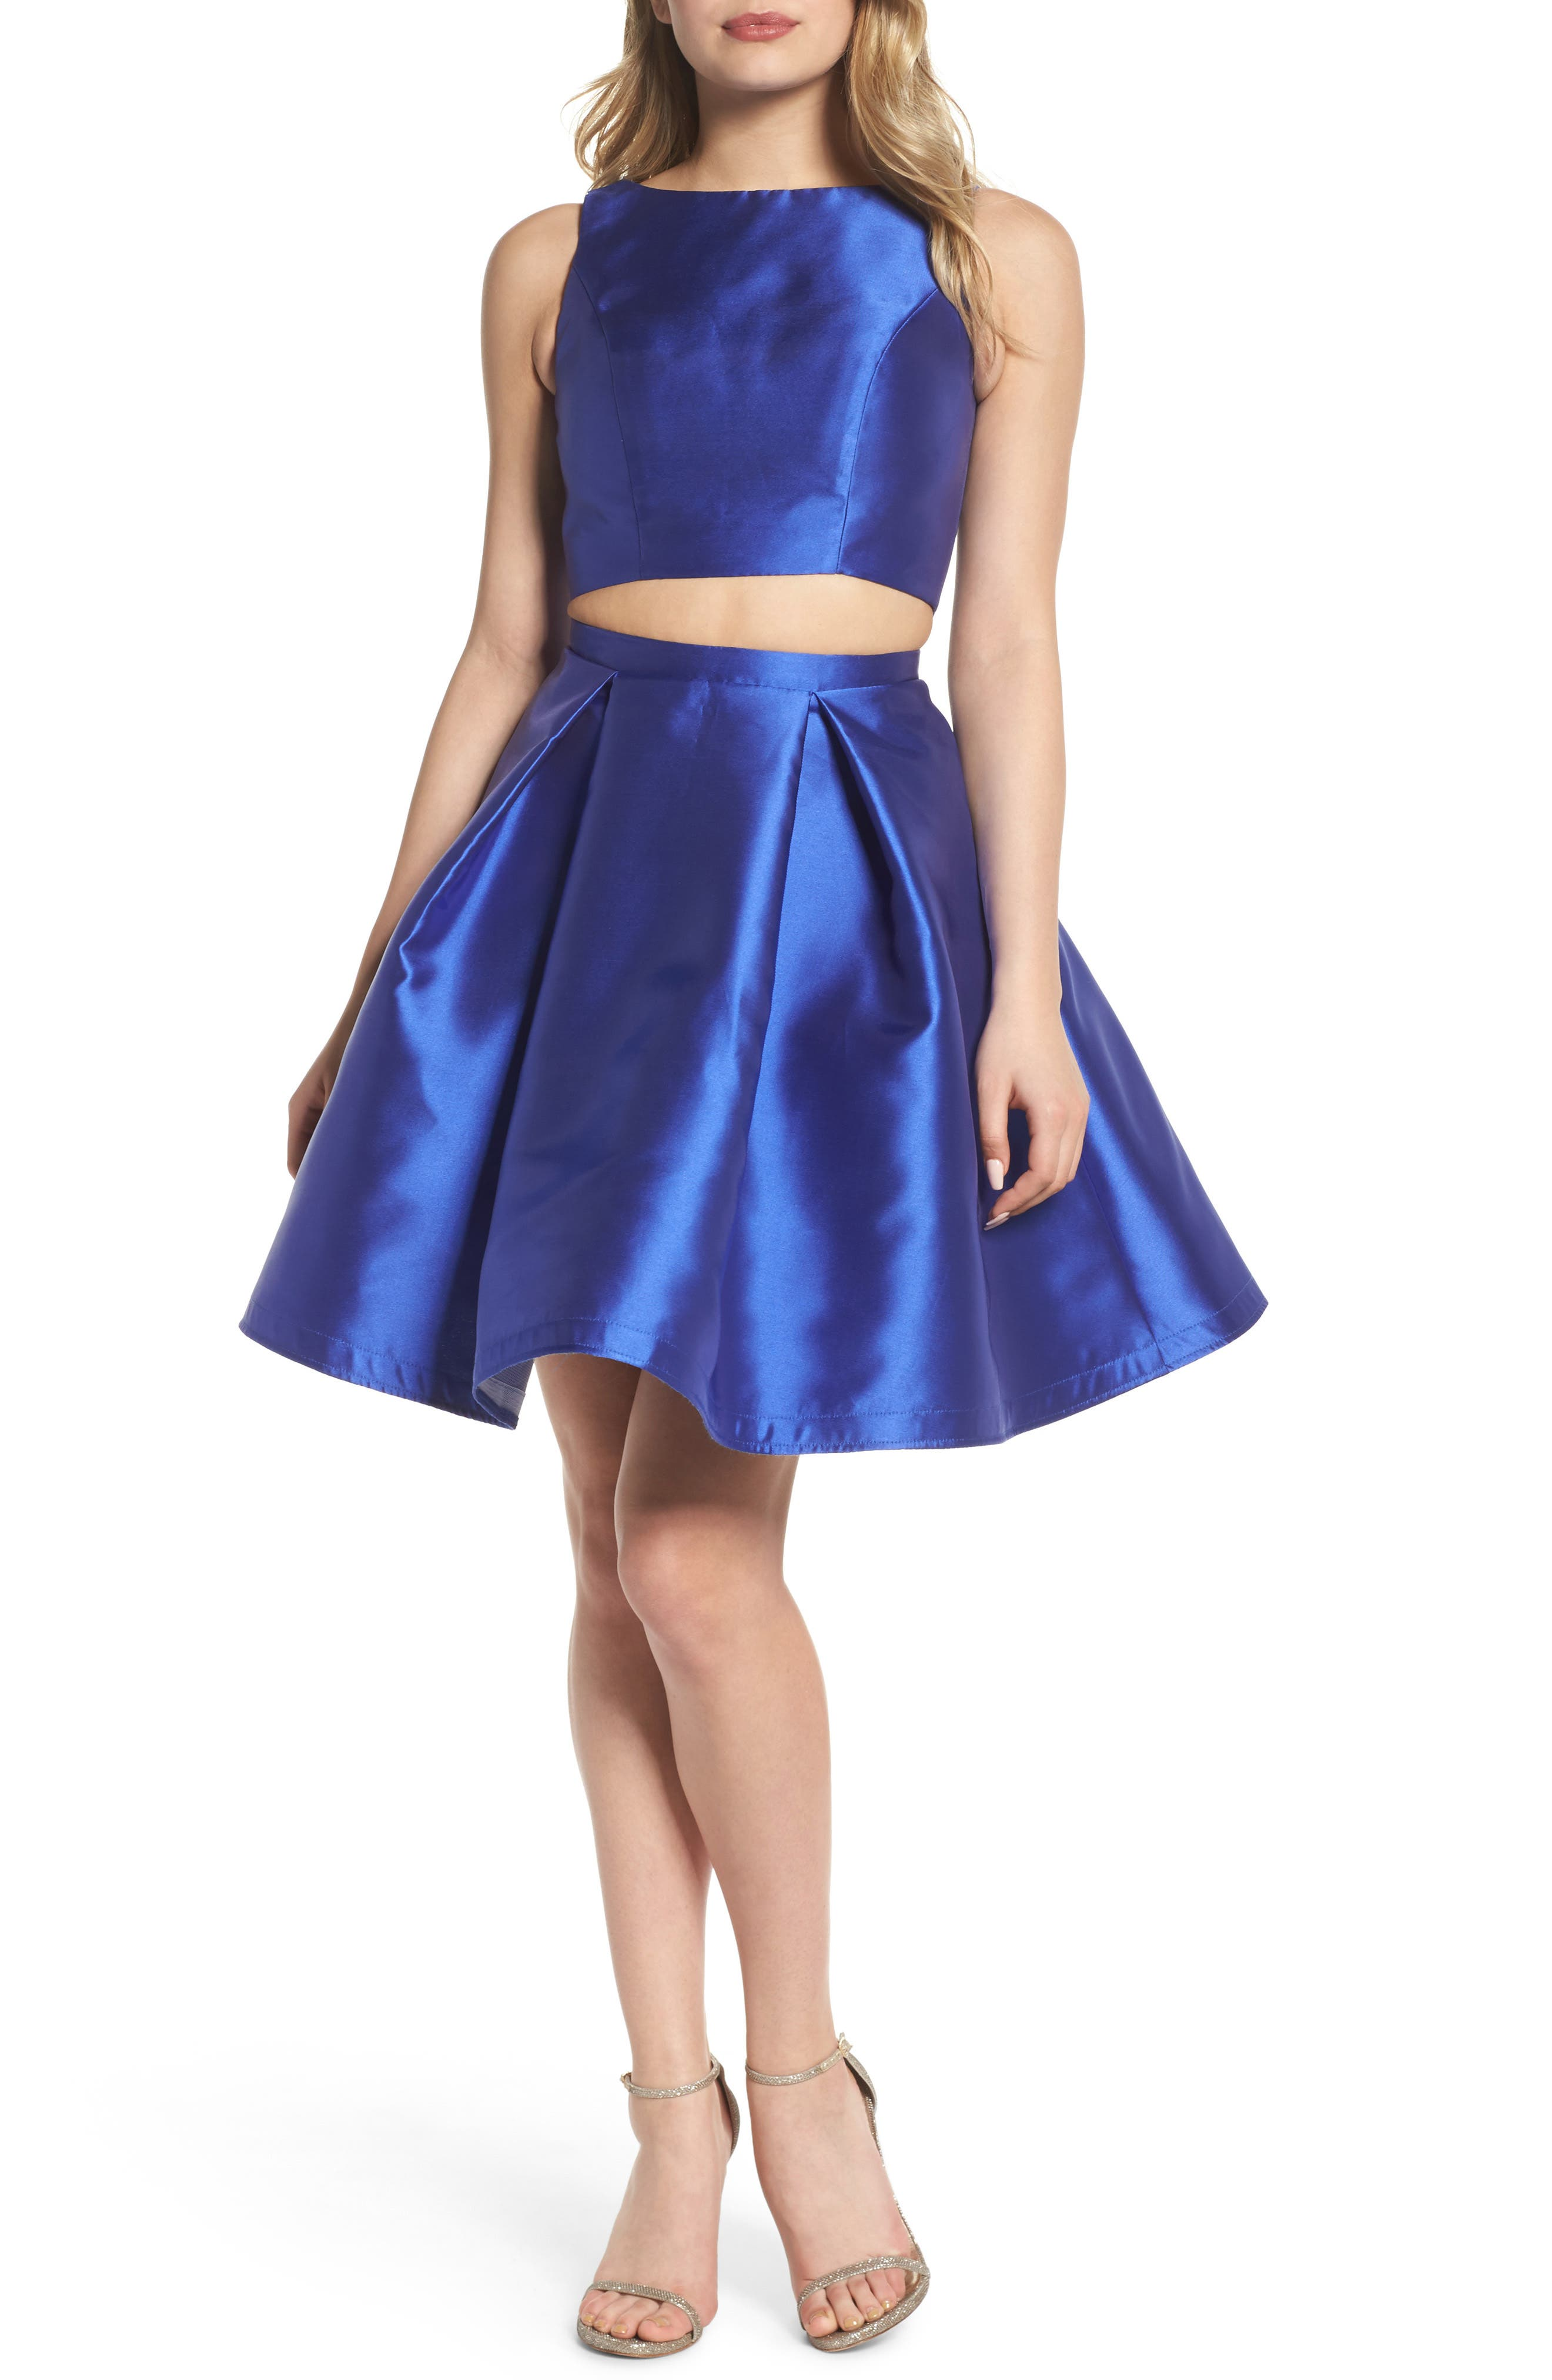 Skater Skirt Two-Piece Dress,                             Main thumbnail 1, color,                             Sapphire